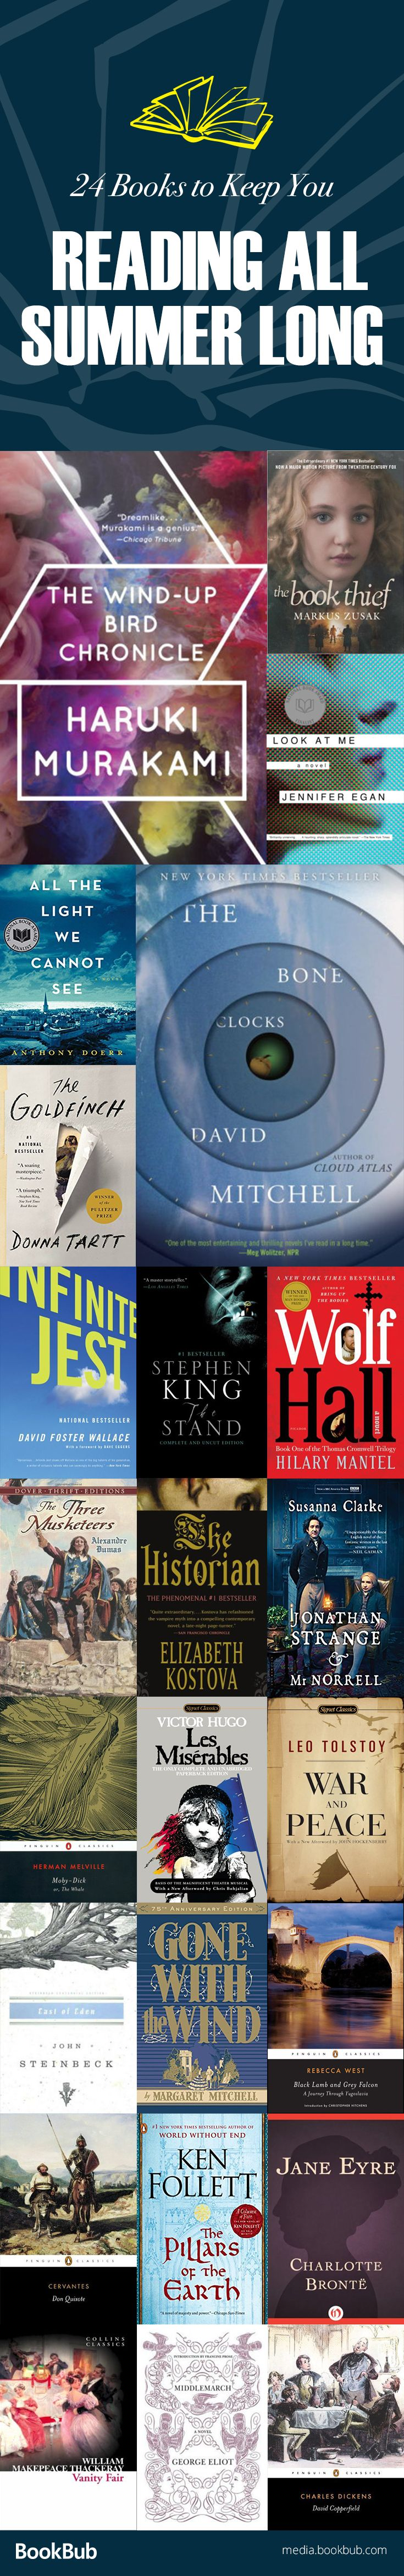 24 Books To Savor This Summer